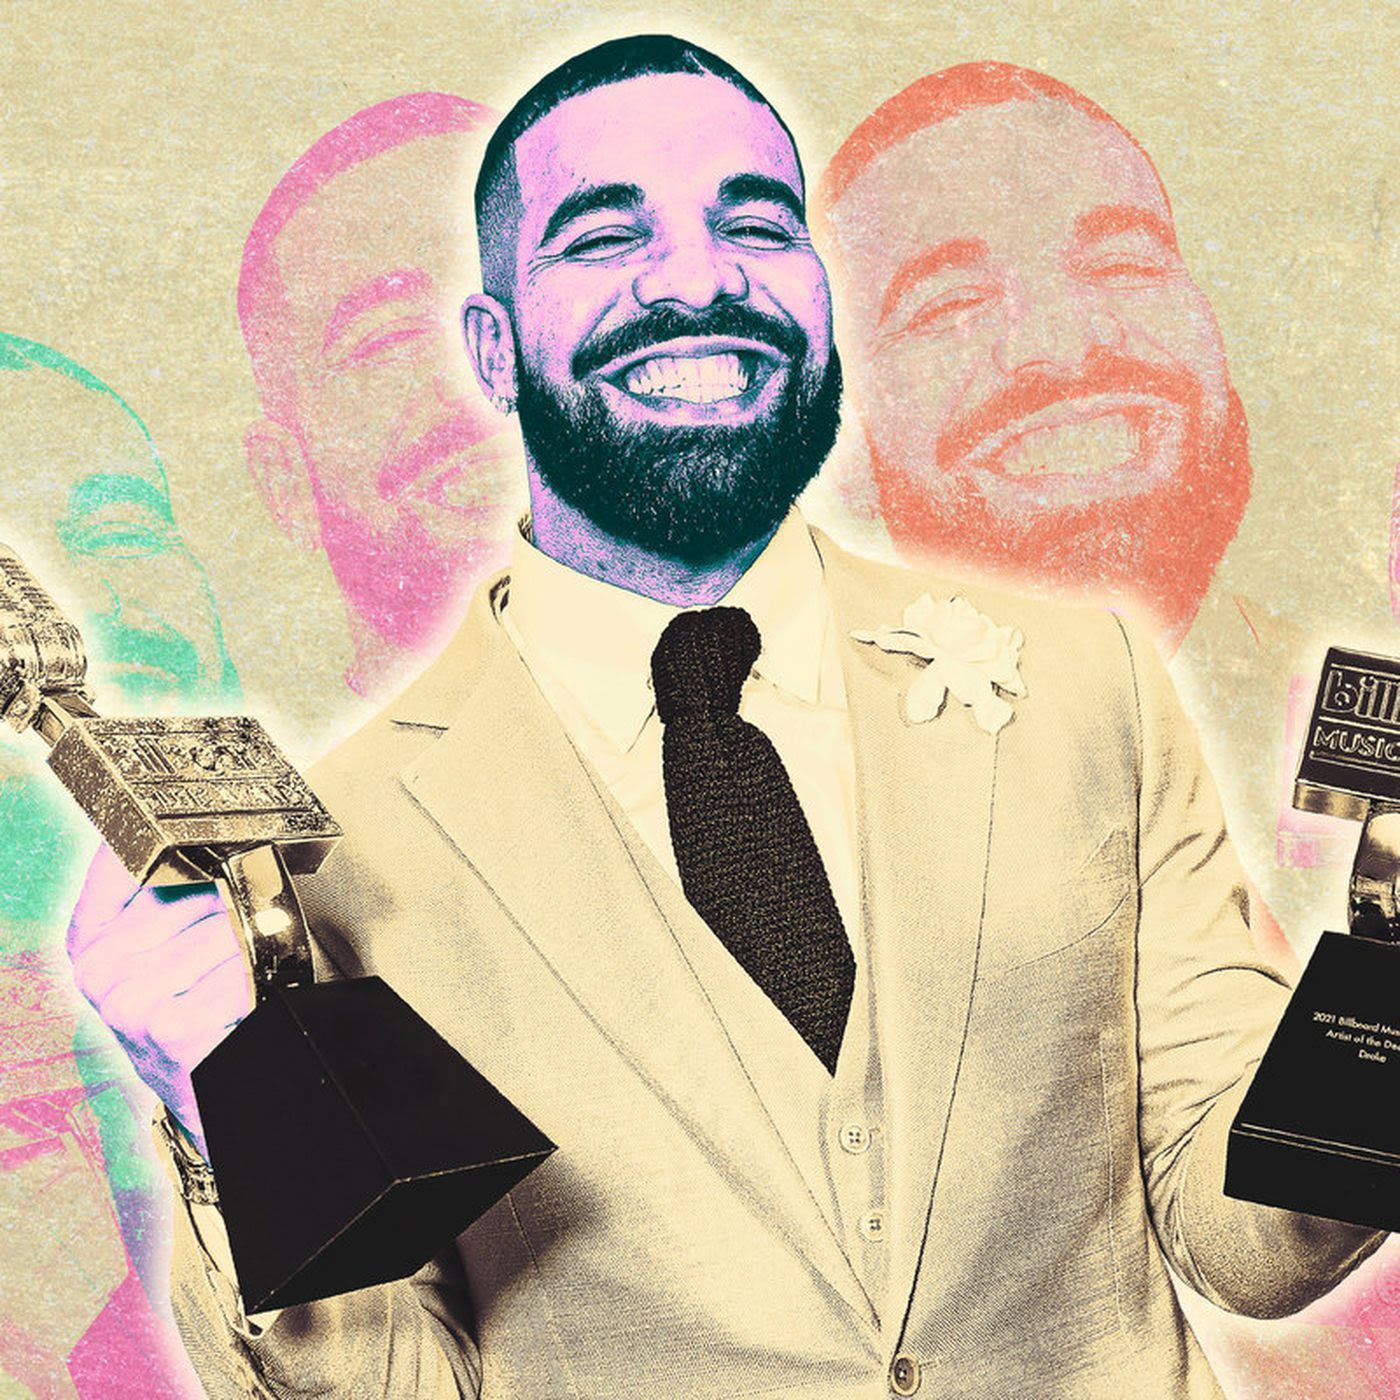 Drake Can Change. He Just Doesn't Have to—Yet.